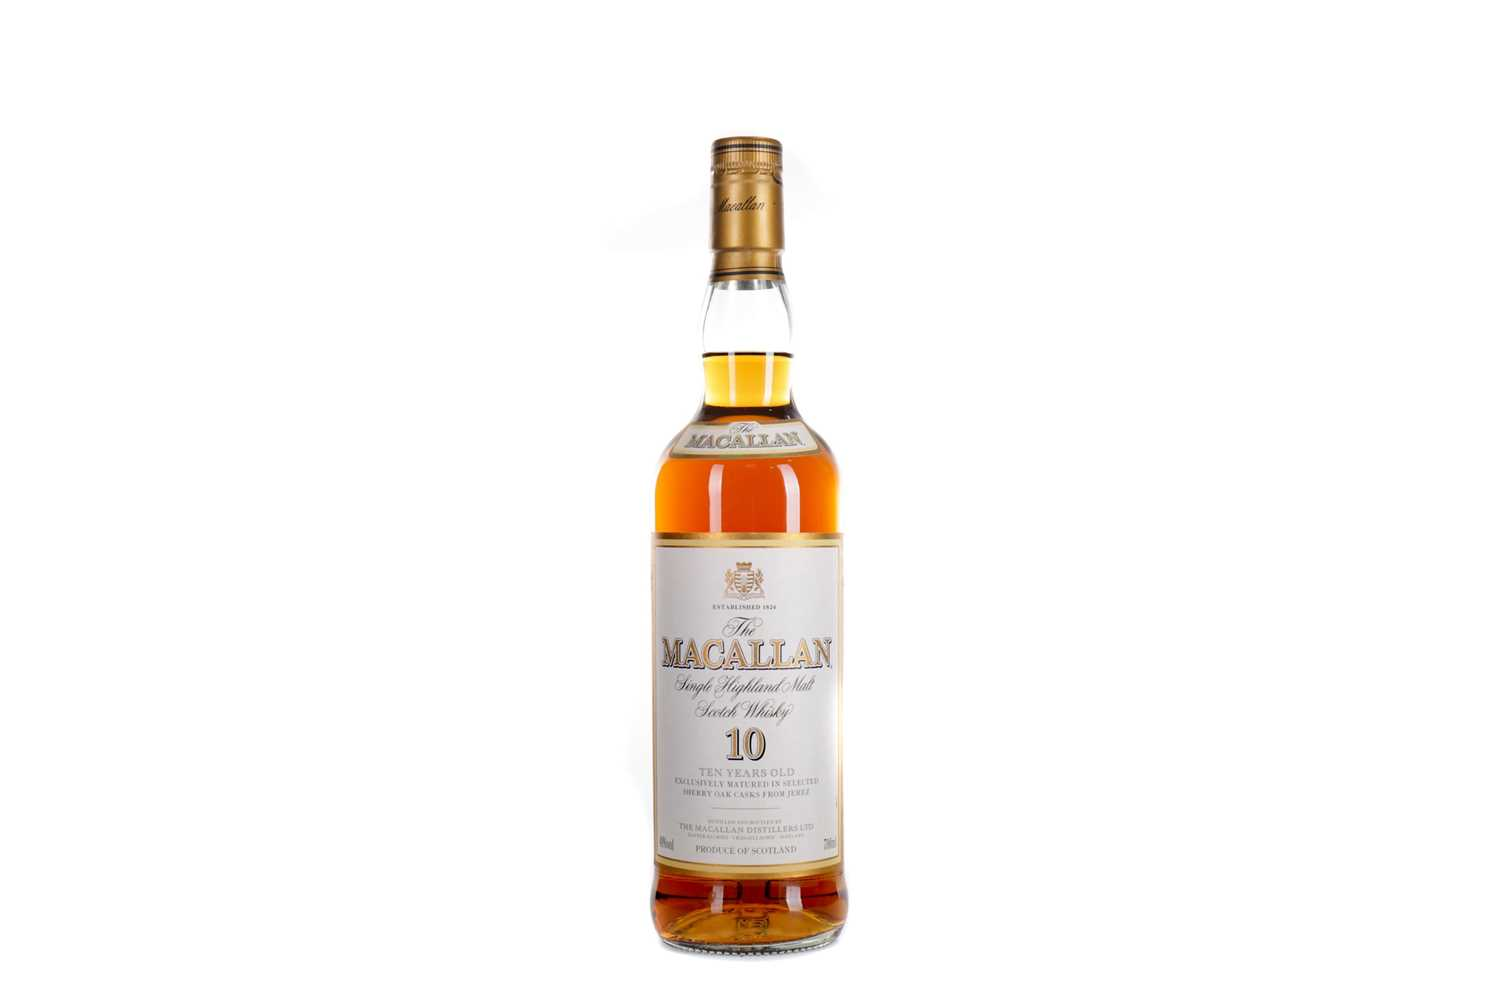 Lot 179 - MACALLAN 10 YEARS OLD